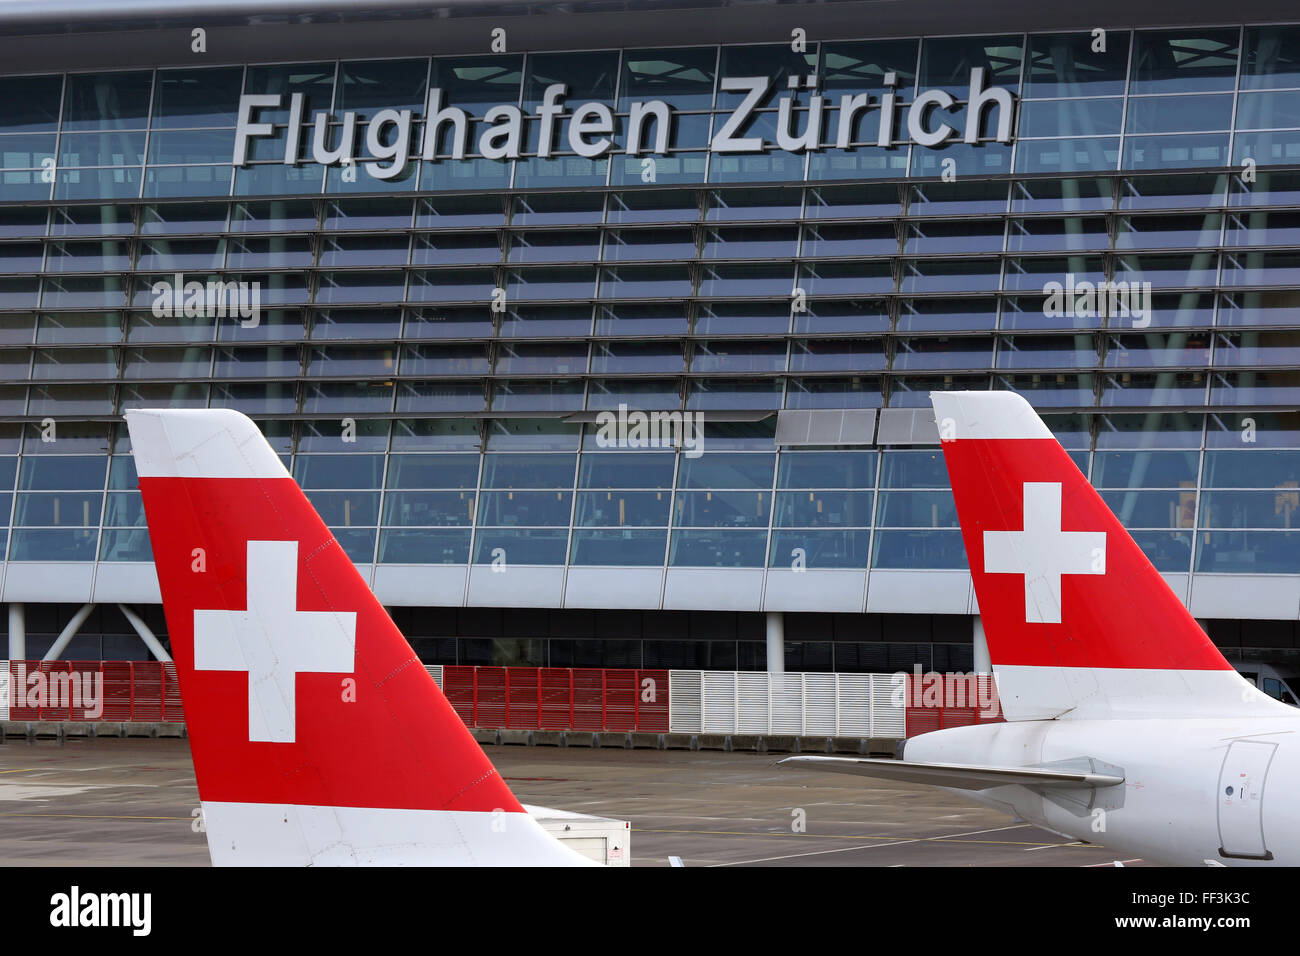 Zurich, Switzerland - January 23, 2016: Swiss International Air Lines airplanes at Zurich Airport (ZRH) in Switzerland. - Stock Image